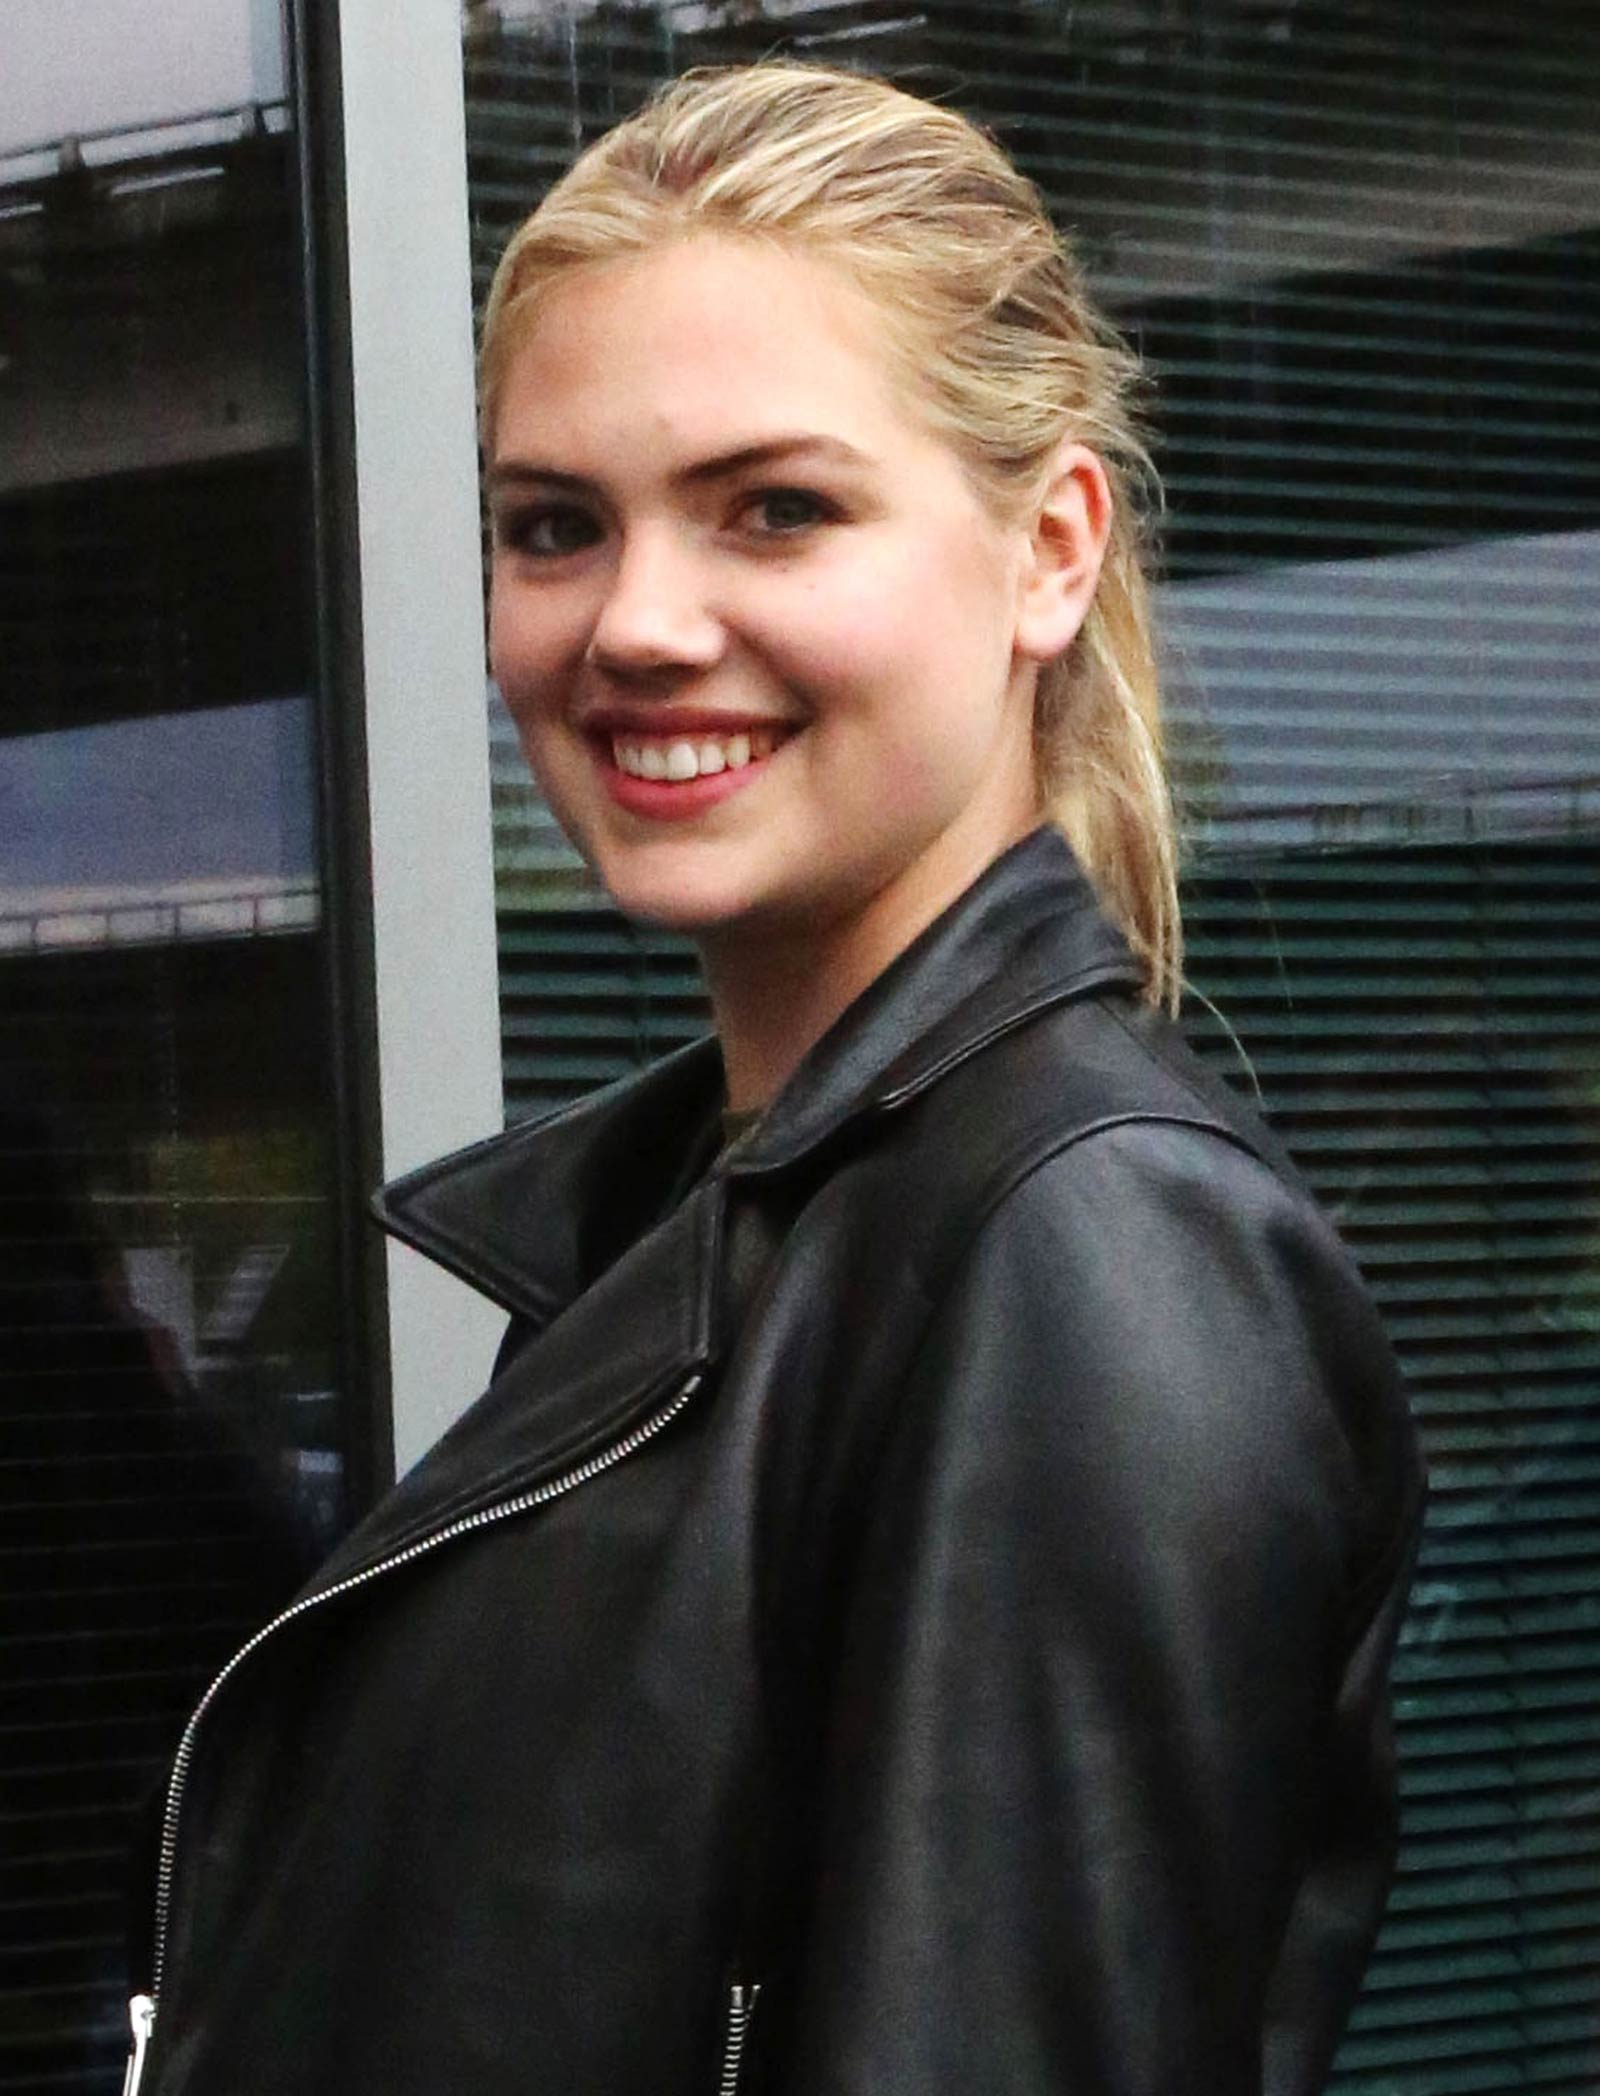 Kate Upton at Vancouver Canucks vs Calgary Flames Game